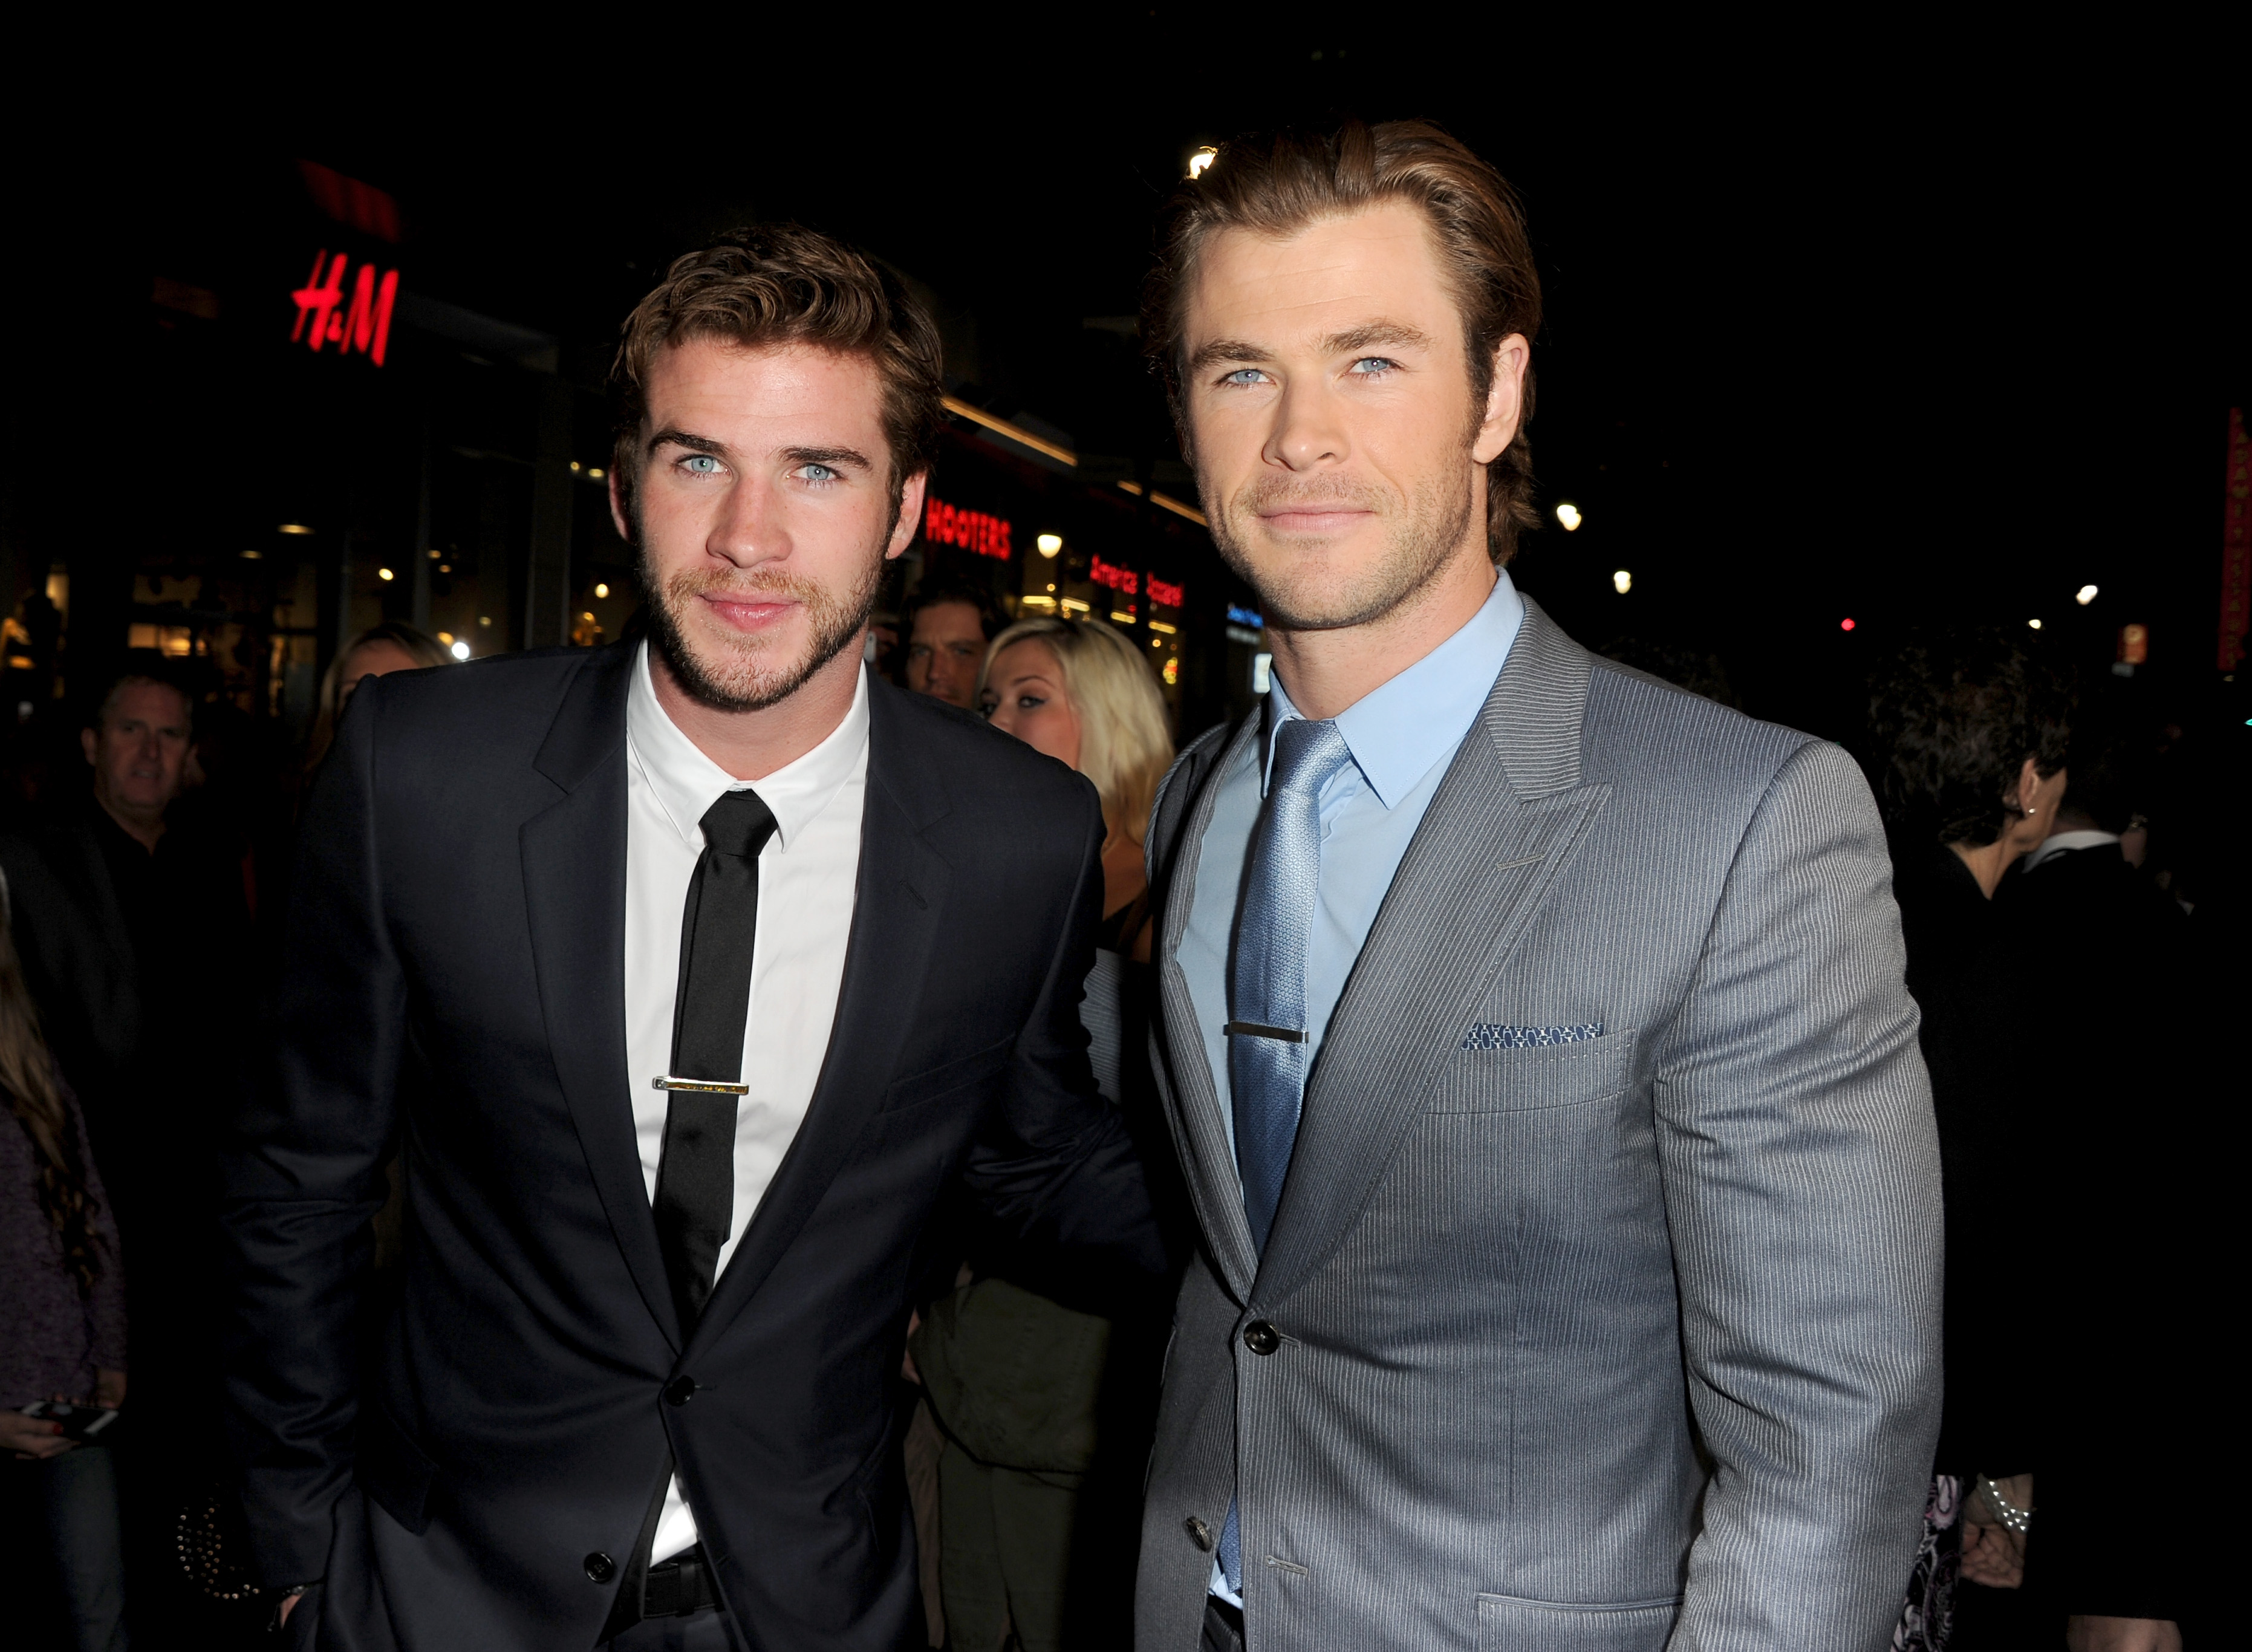 Actors Liam Hemsworth (L) and Chris Hemsworth arrive at the premiere of Marvel's  Thor: The Dark World  at the El Capitan Theatre on November 4, 2013 in Hollywood, California.